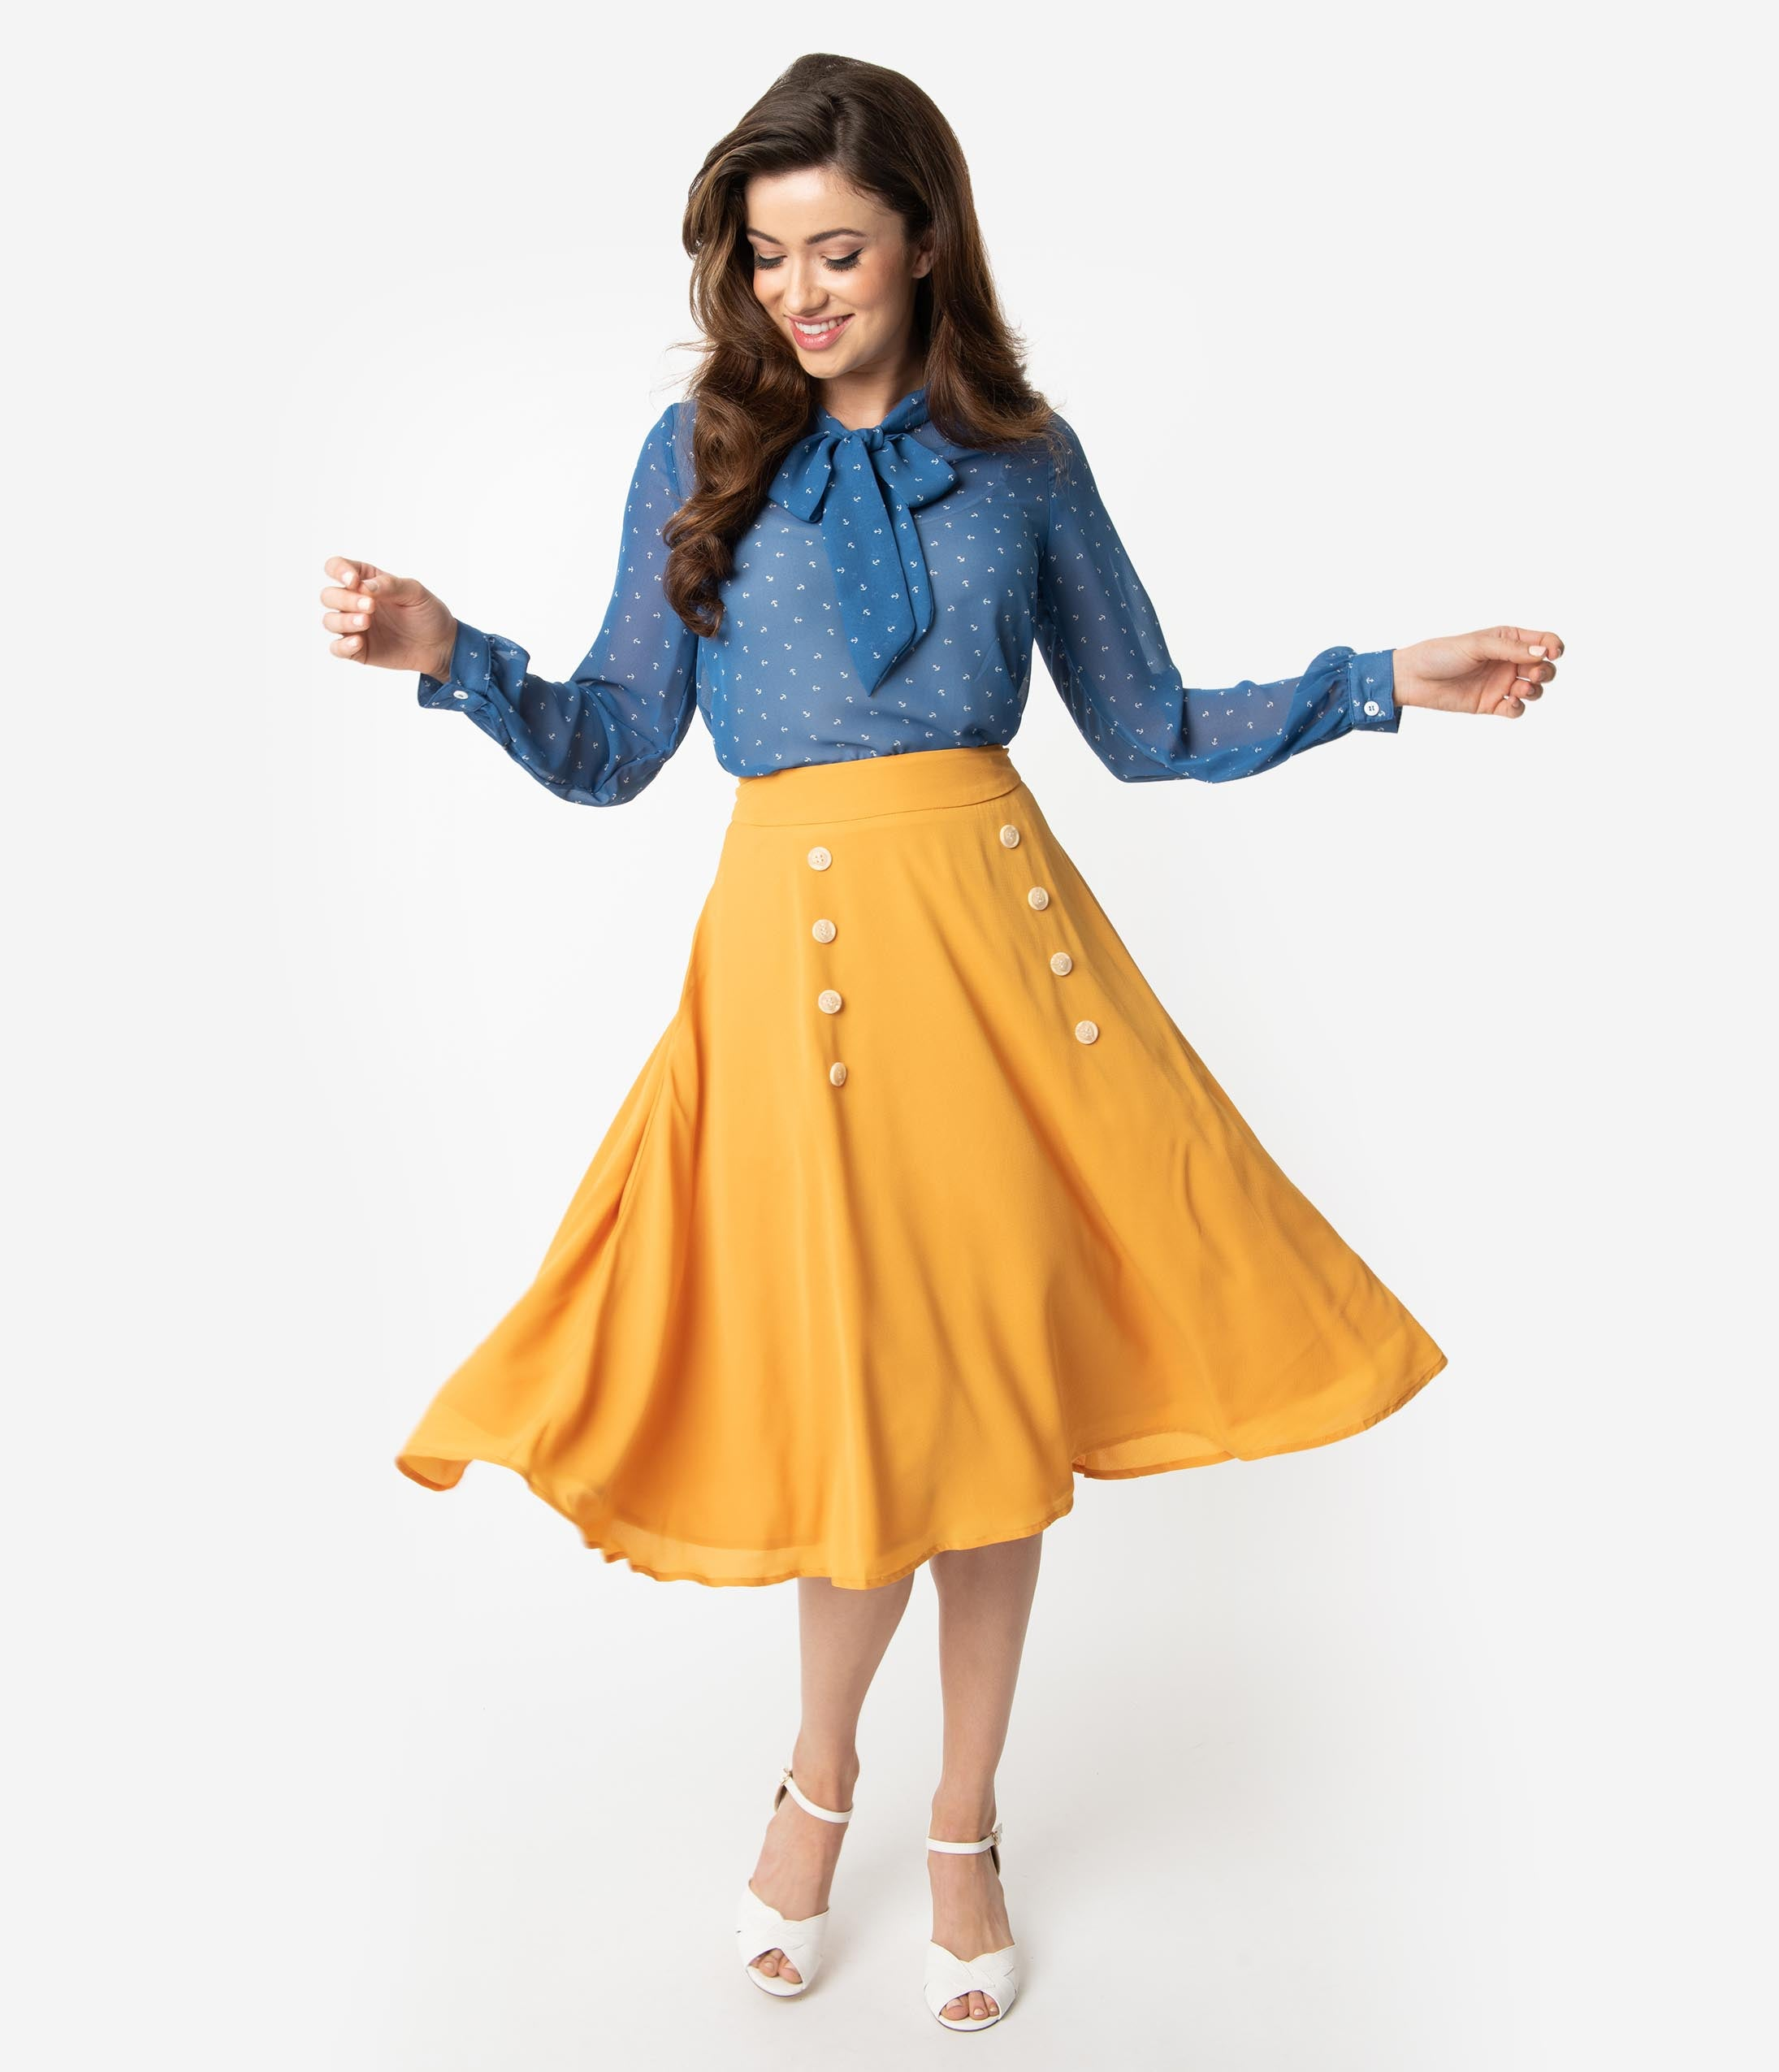 Retro Skirts: Vintage, Pencil, Circle, & Plus Sizes 1950S Style Mustard Yellow Crepe Cute As A Button High Waist Swing Skirt $48.00 AT vintagedancer.com